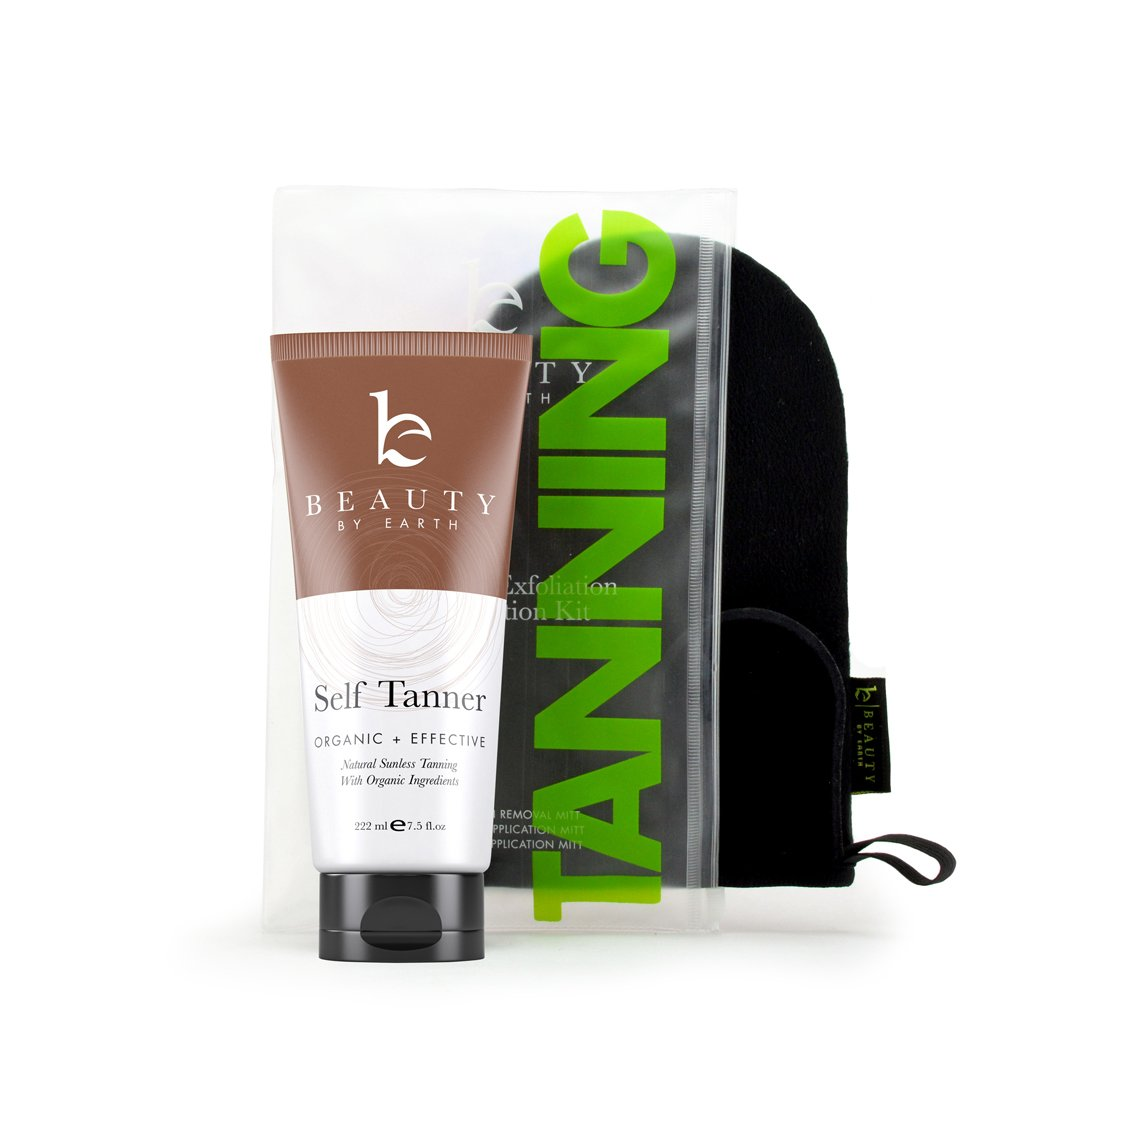 Self Tanner & Tanning Application Kit - Bundle of Sunless Tanning Lotion Made With Natural & Organic Ingredients, Exfoliation Mitt, Body and Face Applicator Glove for a Professional Self Tan by Beauty by Earth (Image #1)